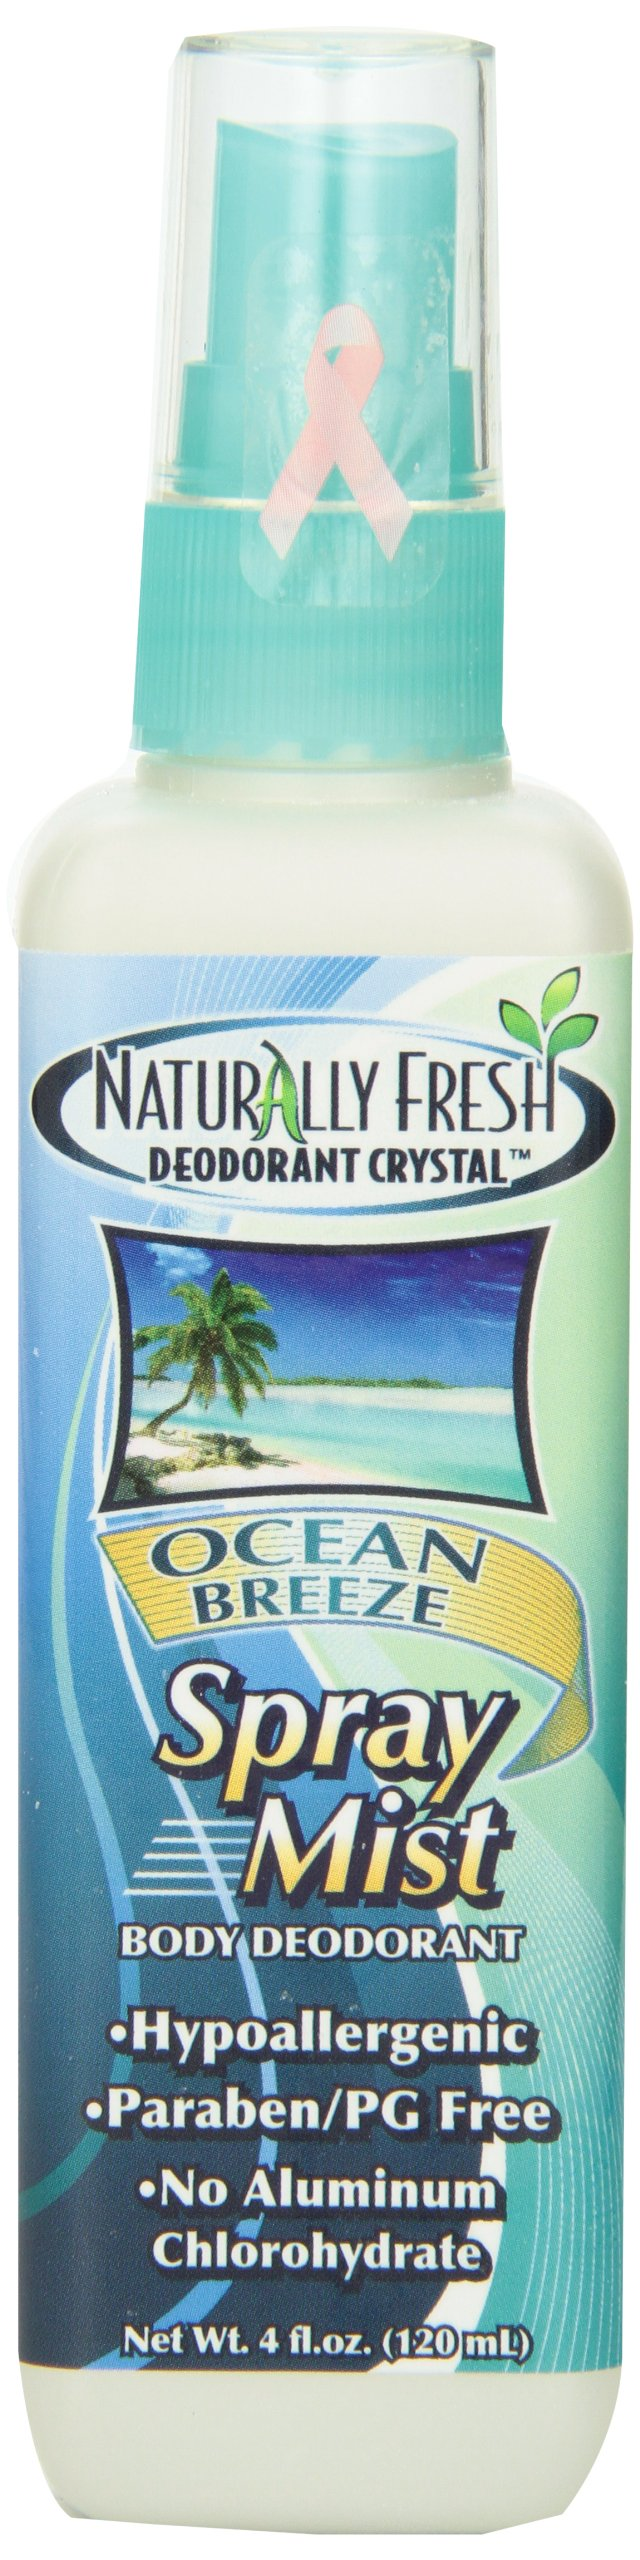 Naturally Fresh Deodorant, Spray Mist, Ocean Breeze, 4-Ounce Bottles (Pack